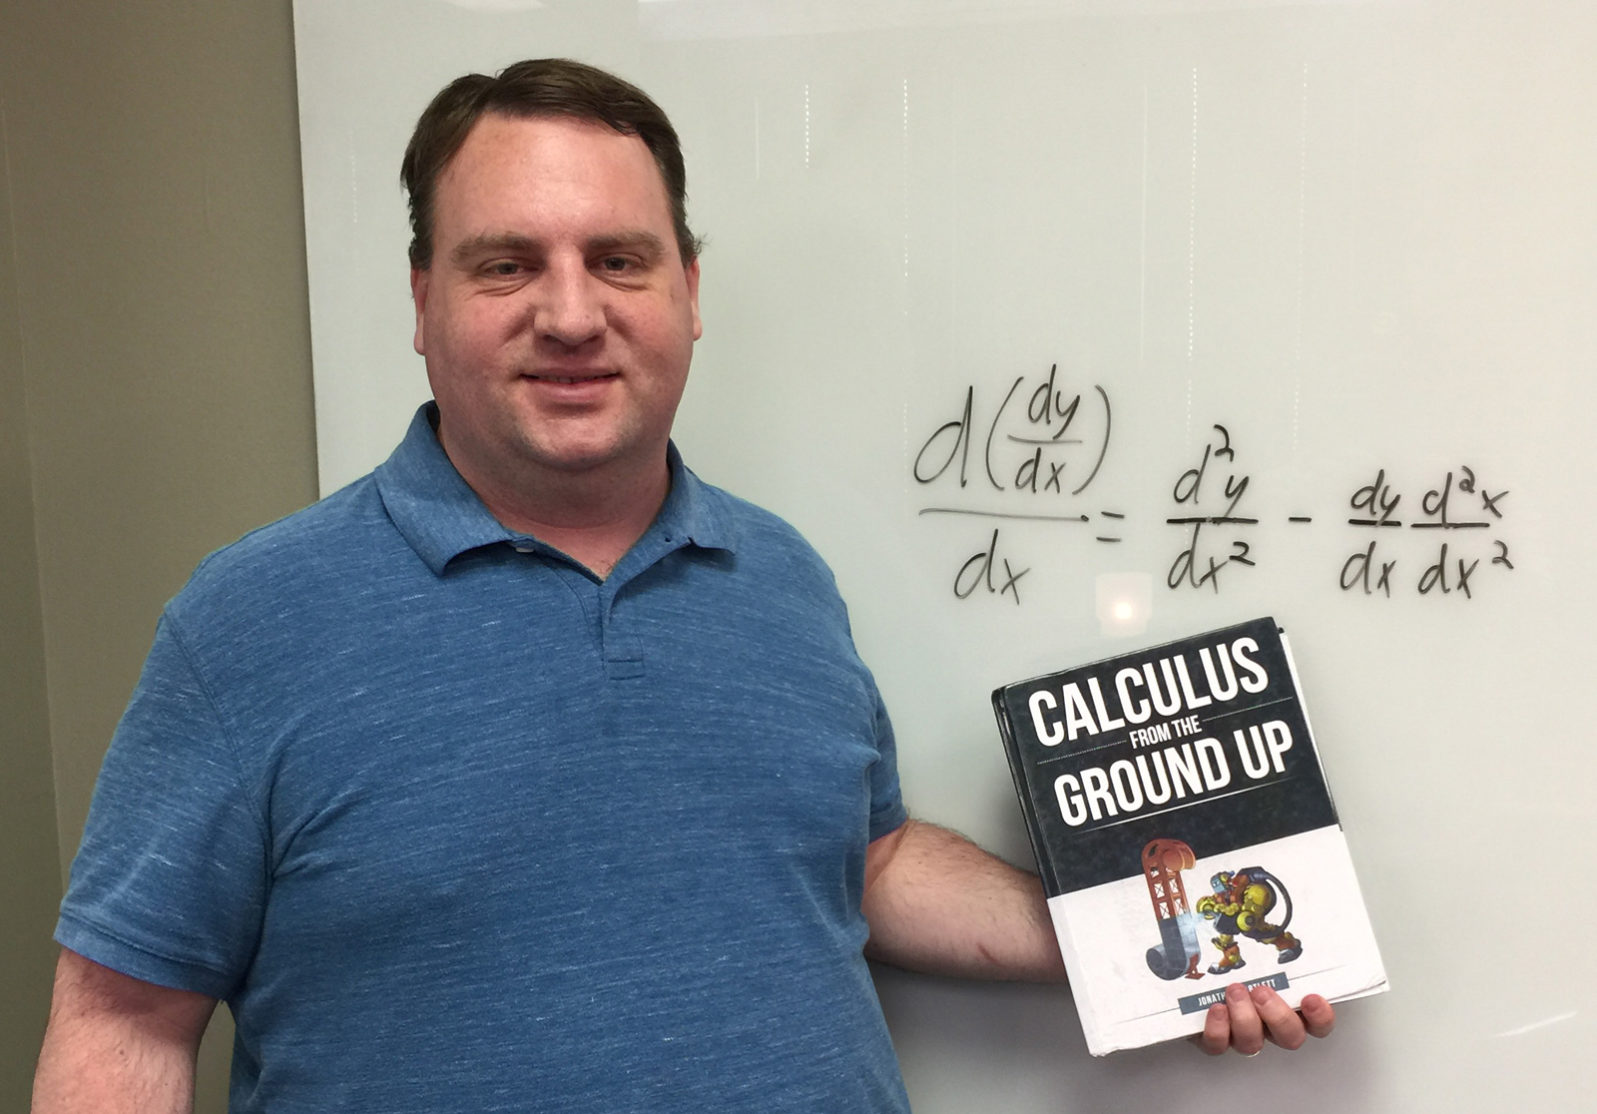 Jonathan Bartlett showing his textbook, Calculus from the Ground Up